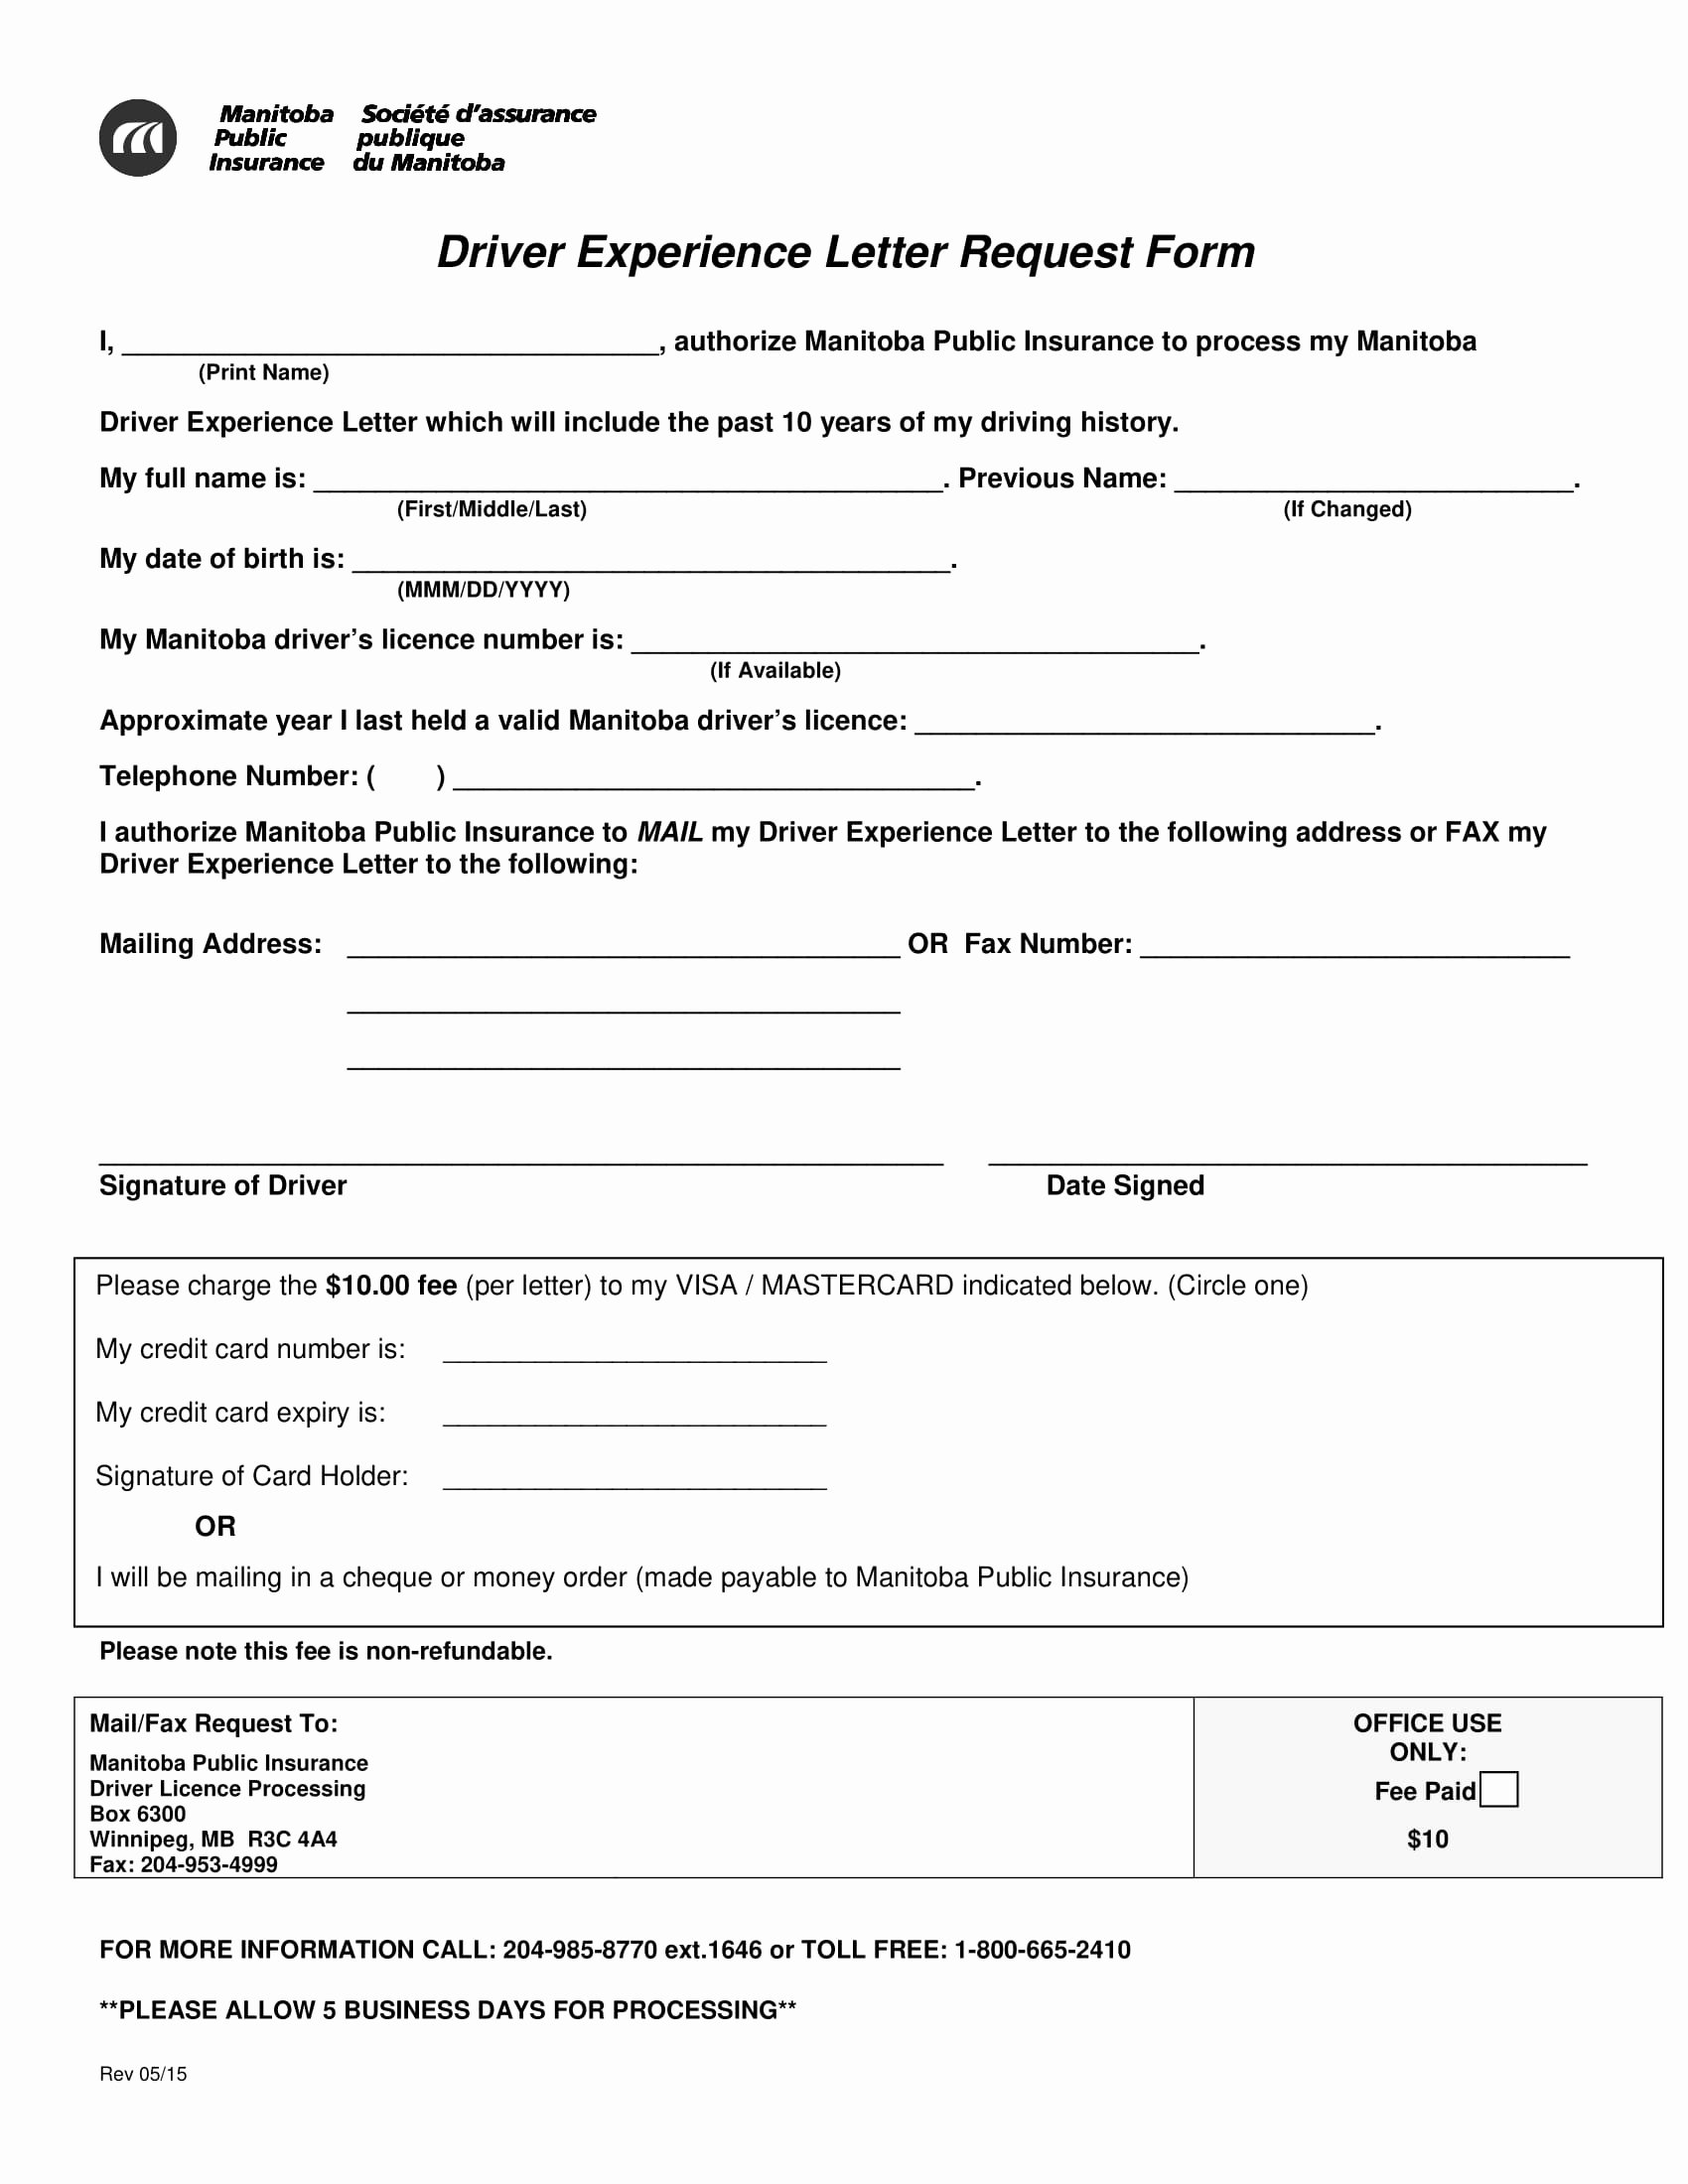 Certificate Of Insurance Request form Template Elegant 18 Experience Letter Templates In Pdf